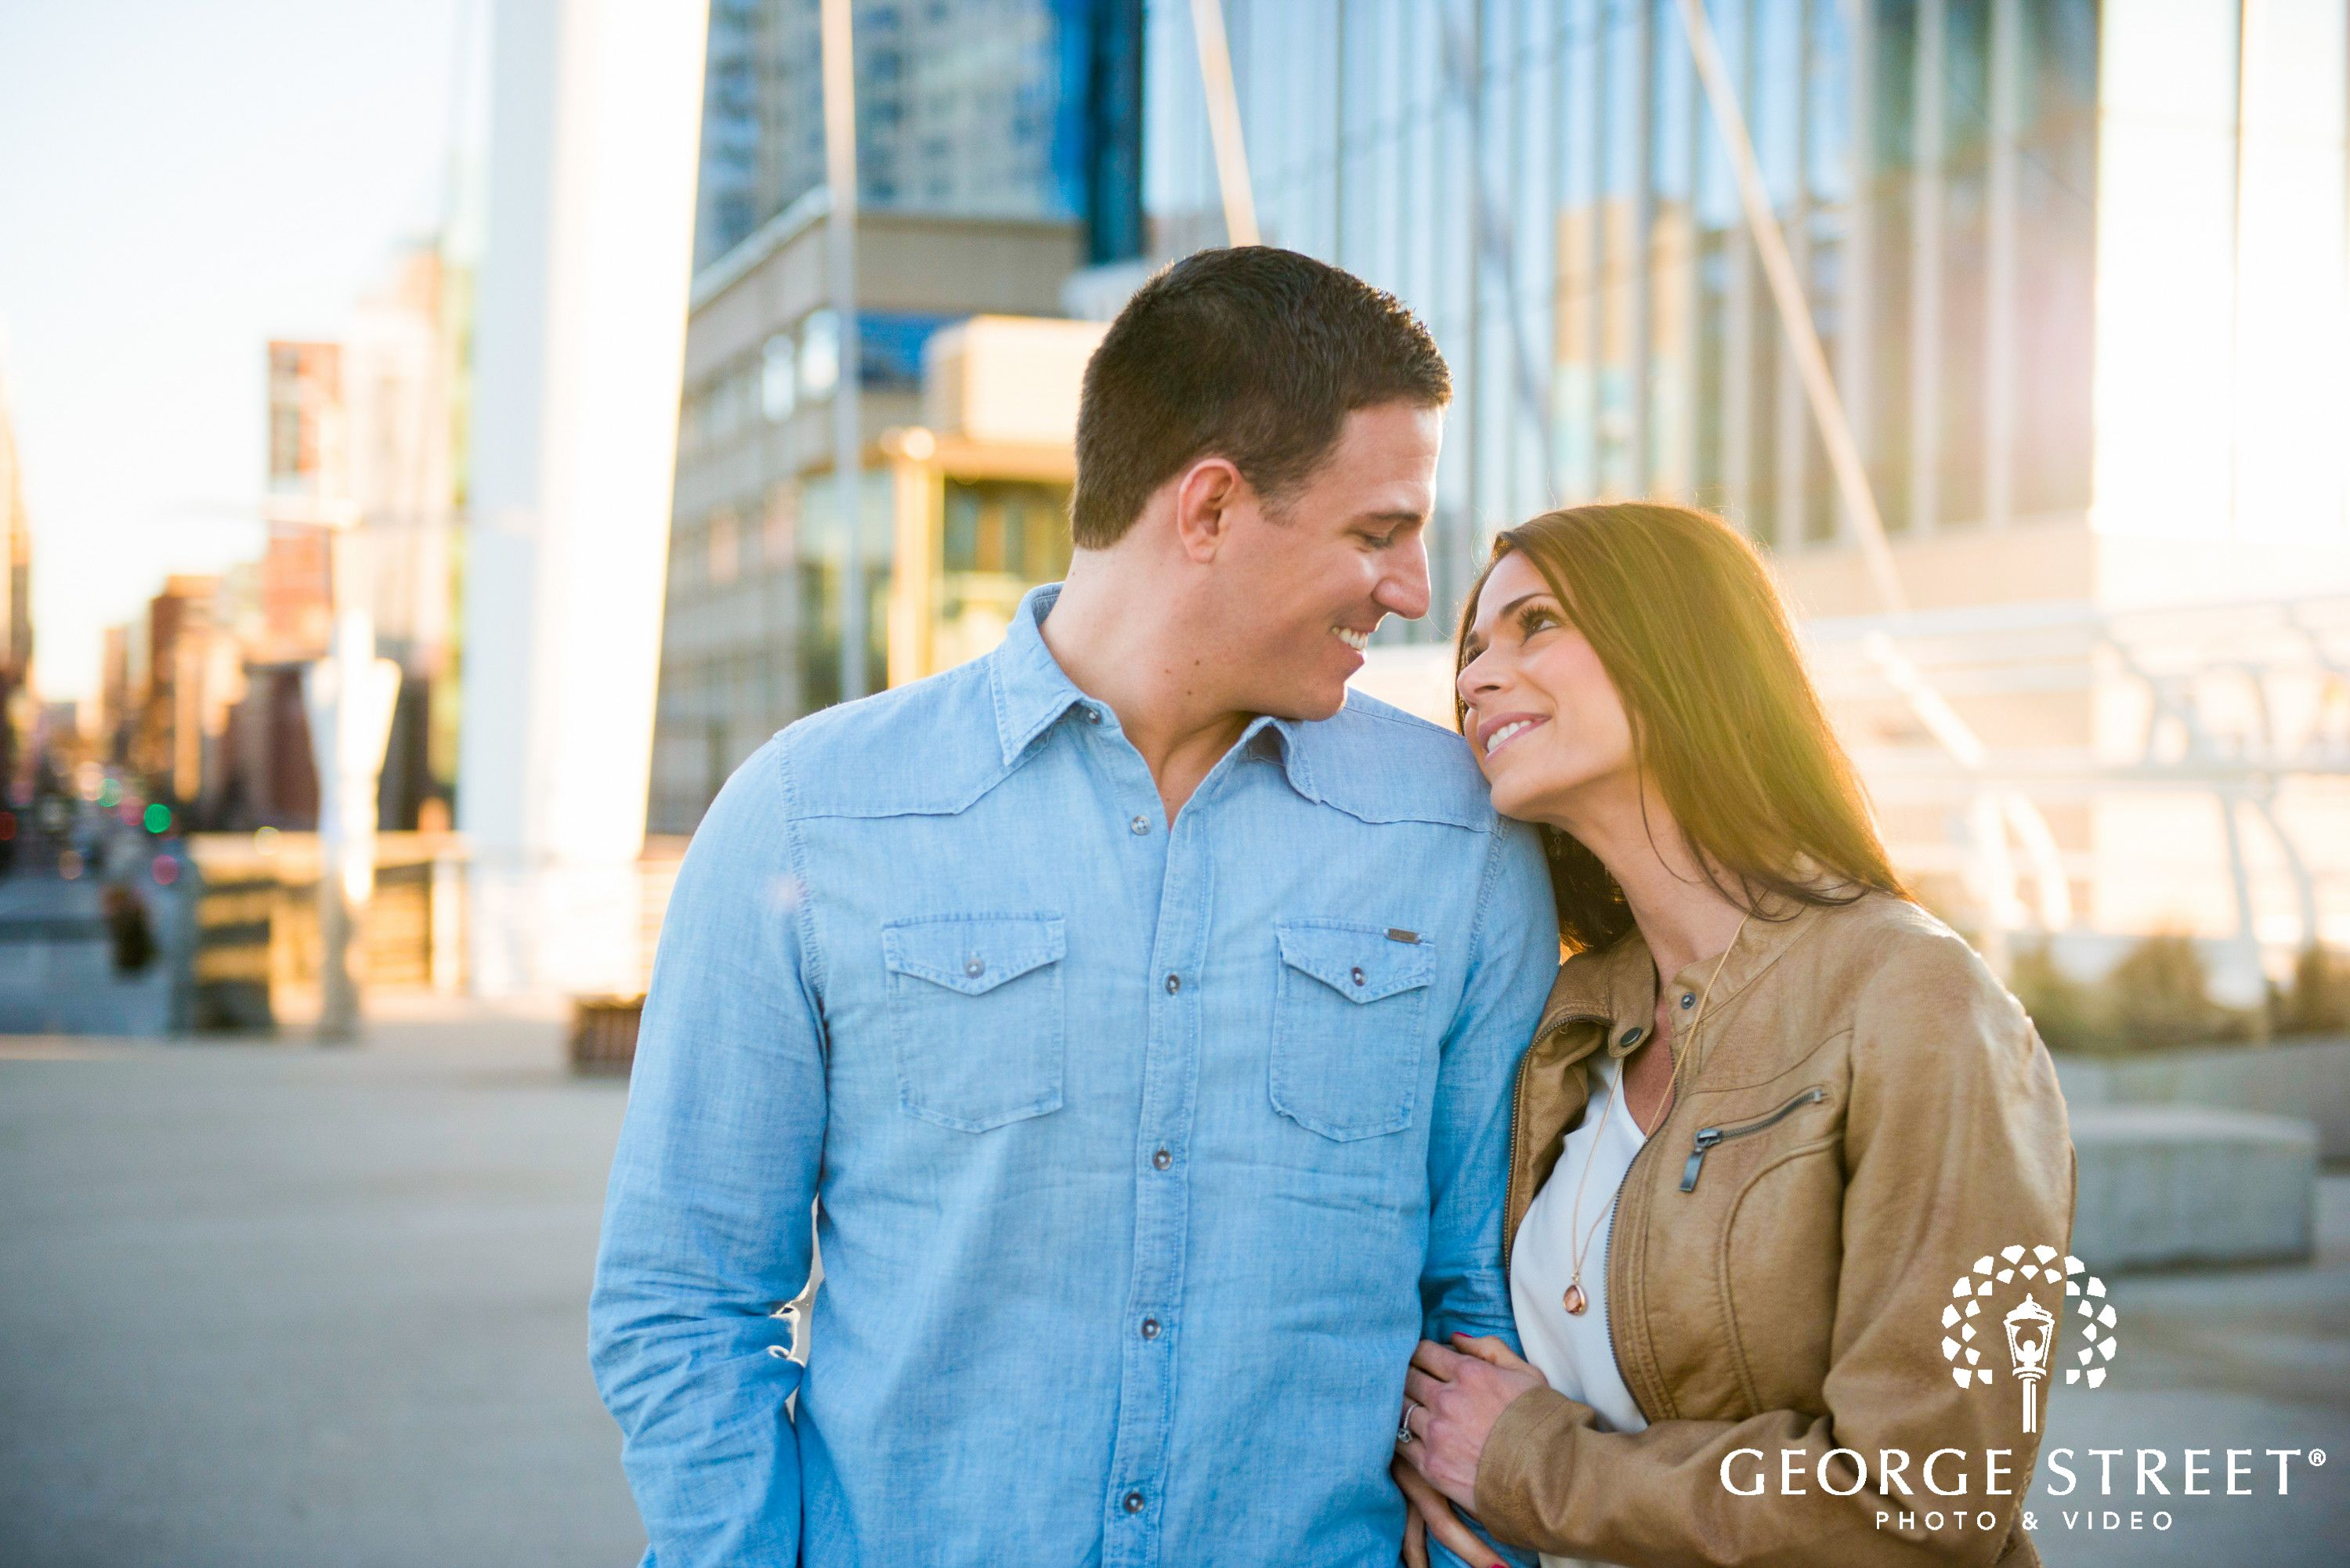 George Street's Top 10 Engagement Session Locations in